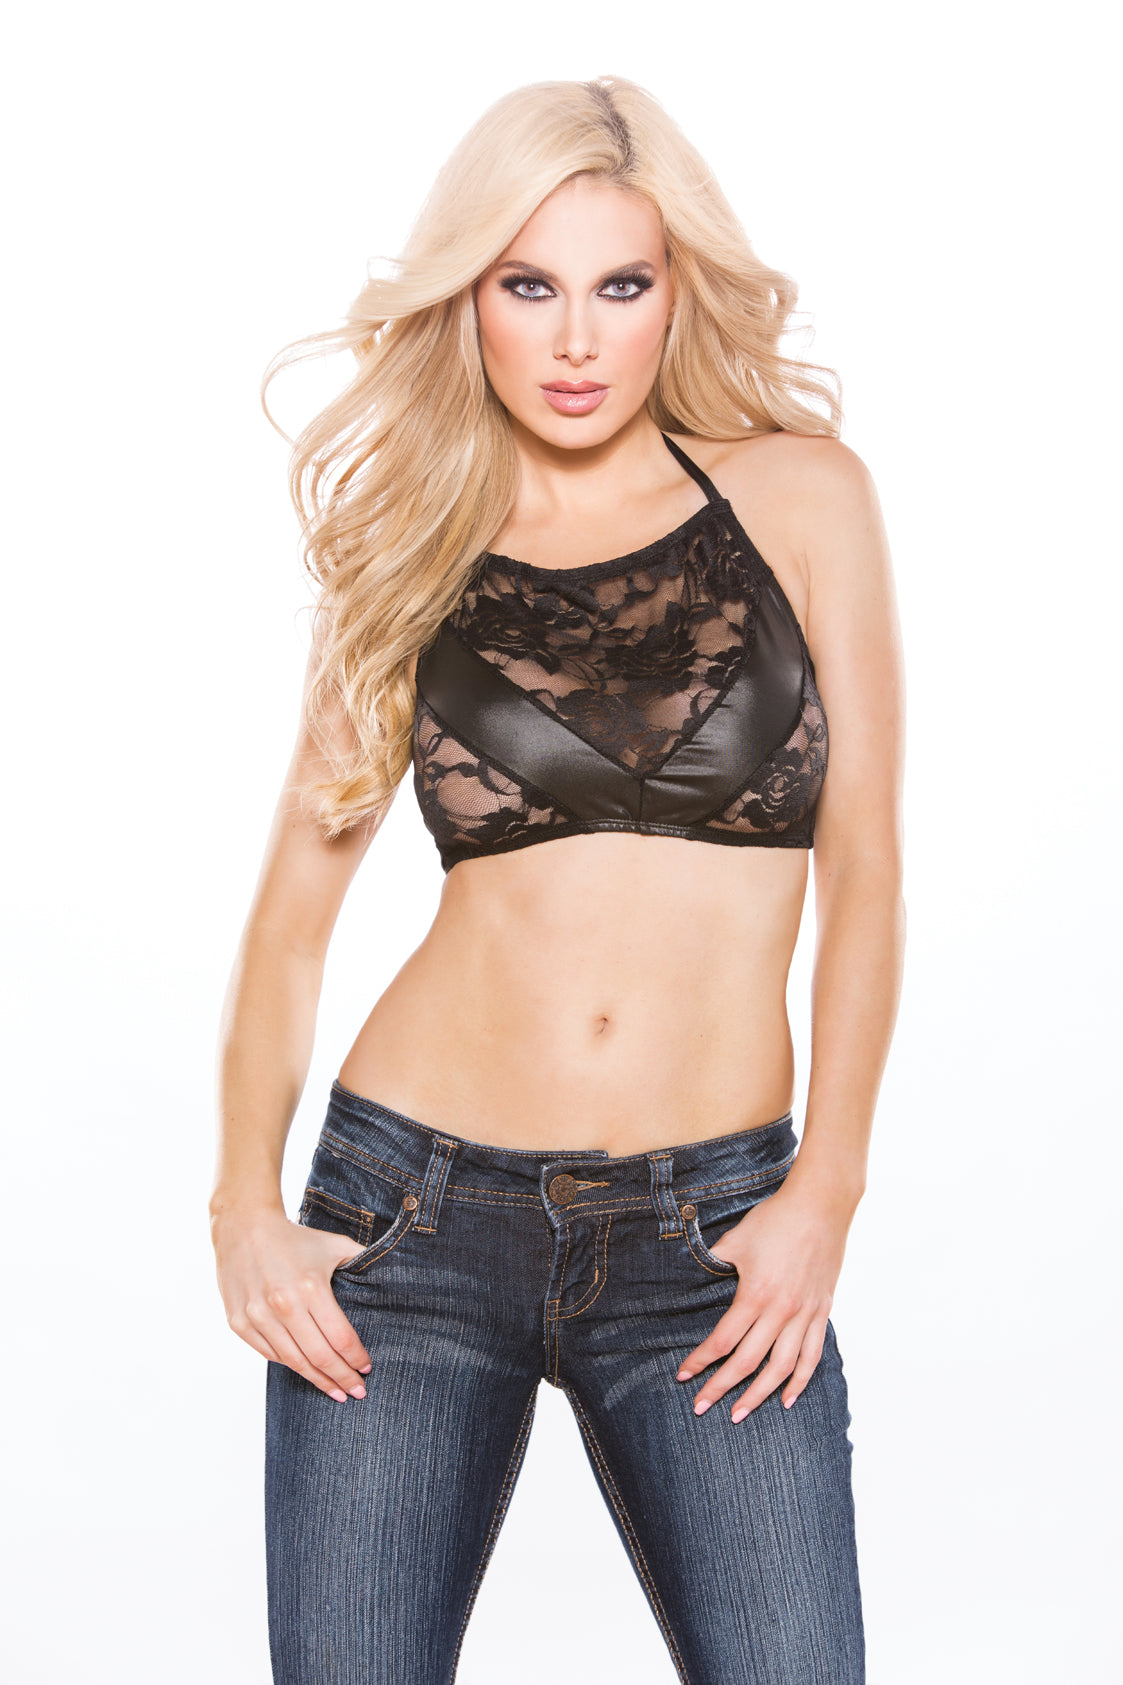 Kitten Lace & Wet Look Top & G-String Set - One  Size